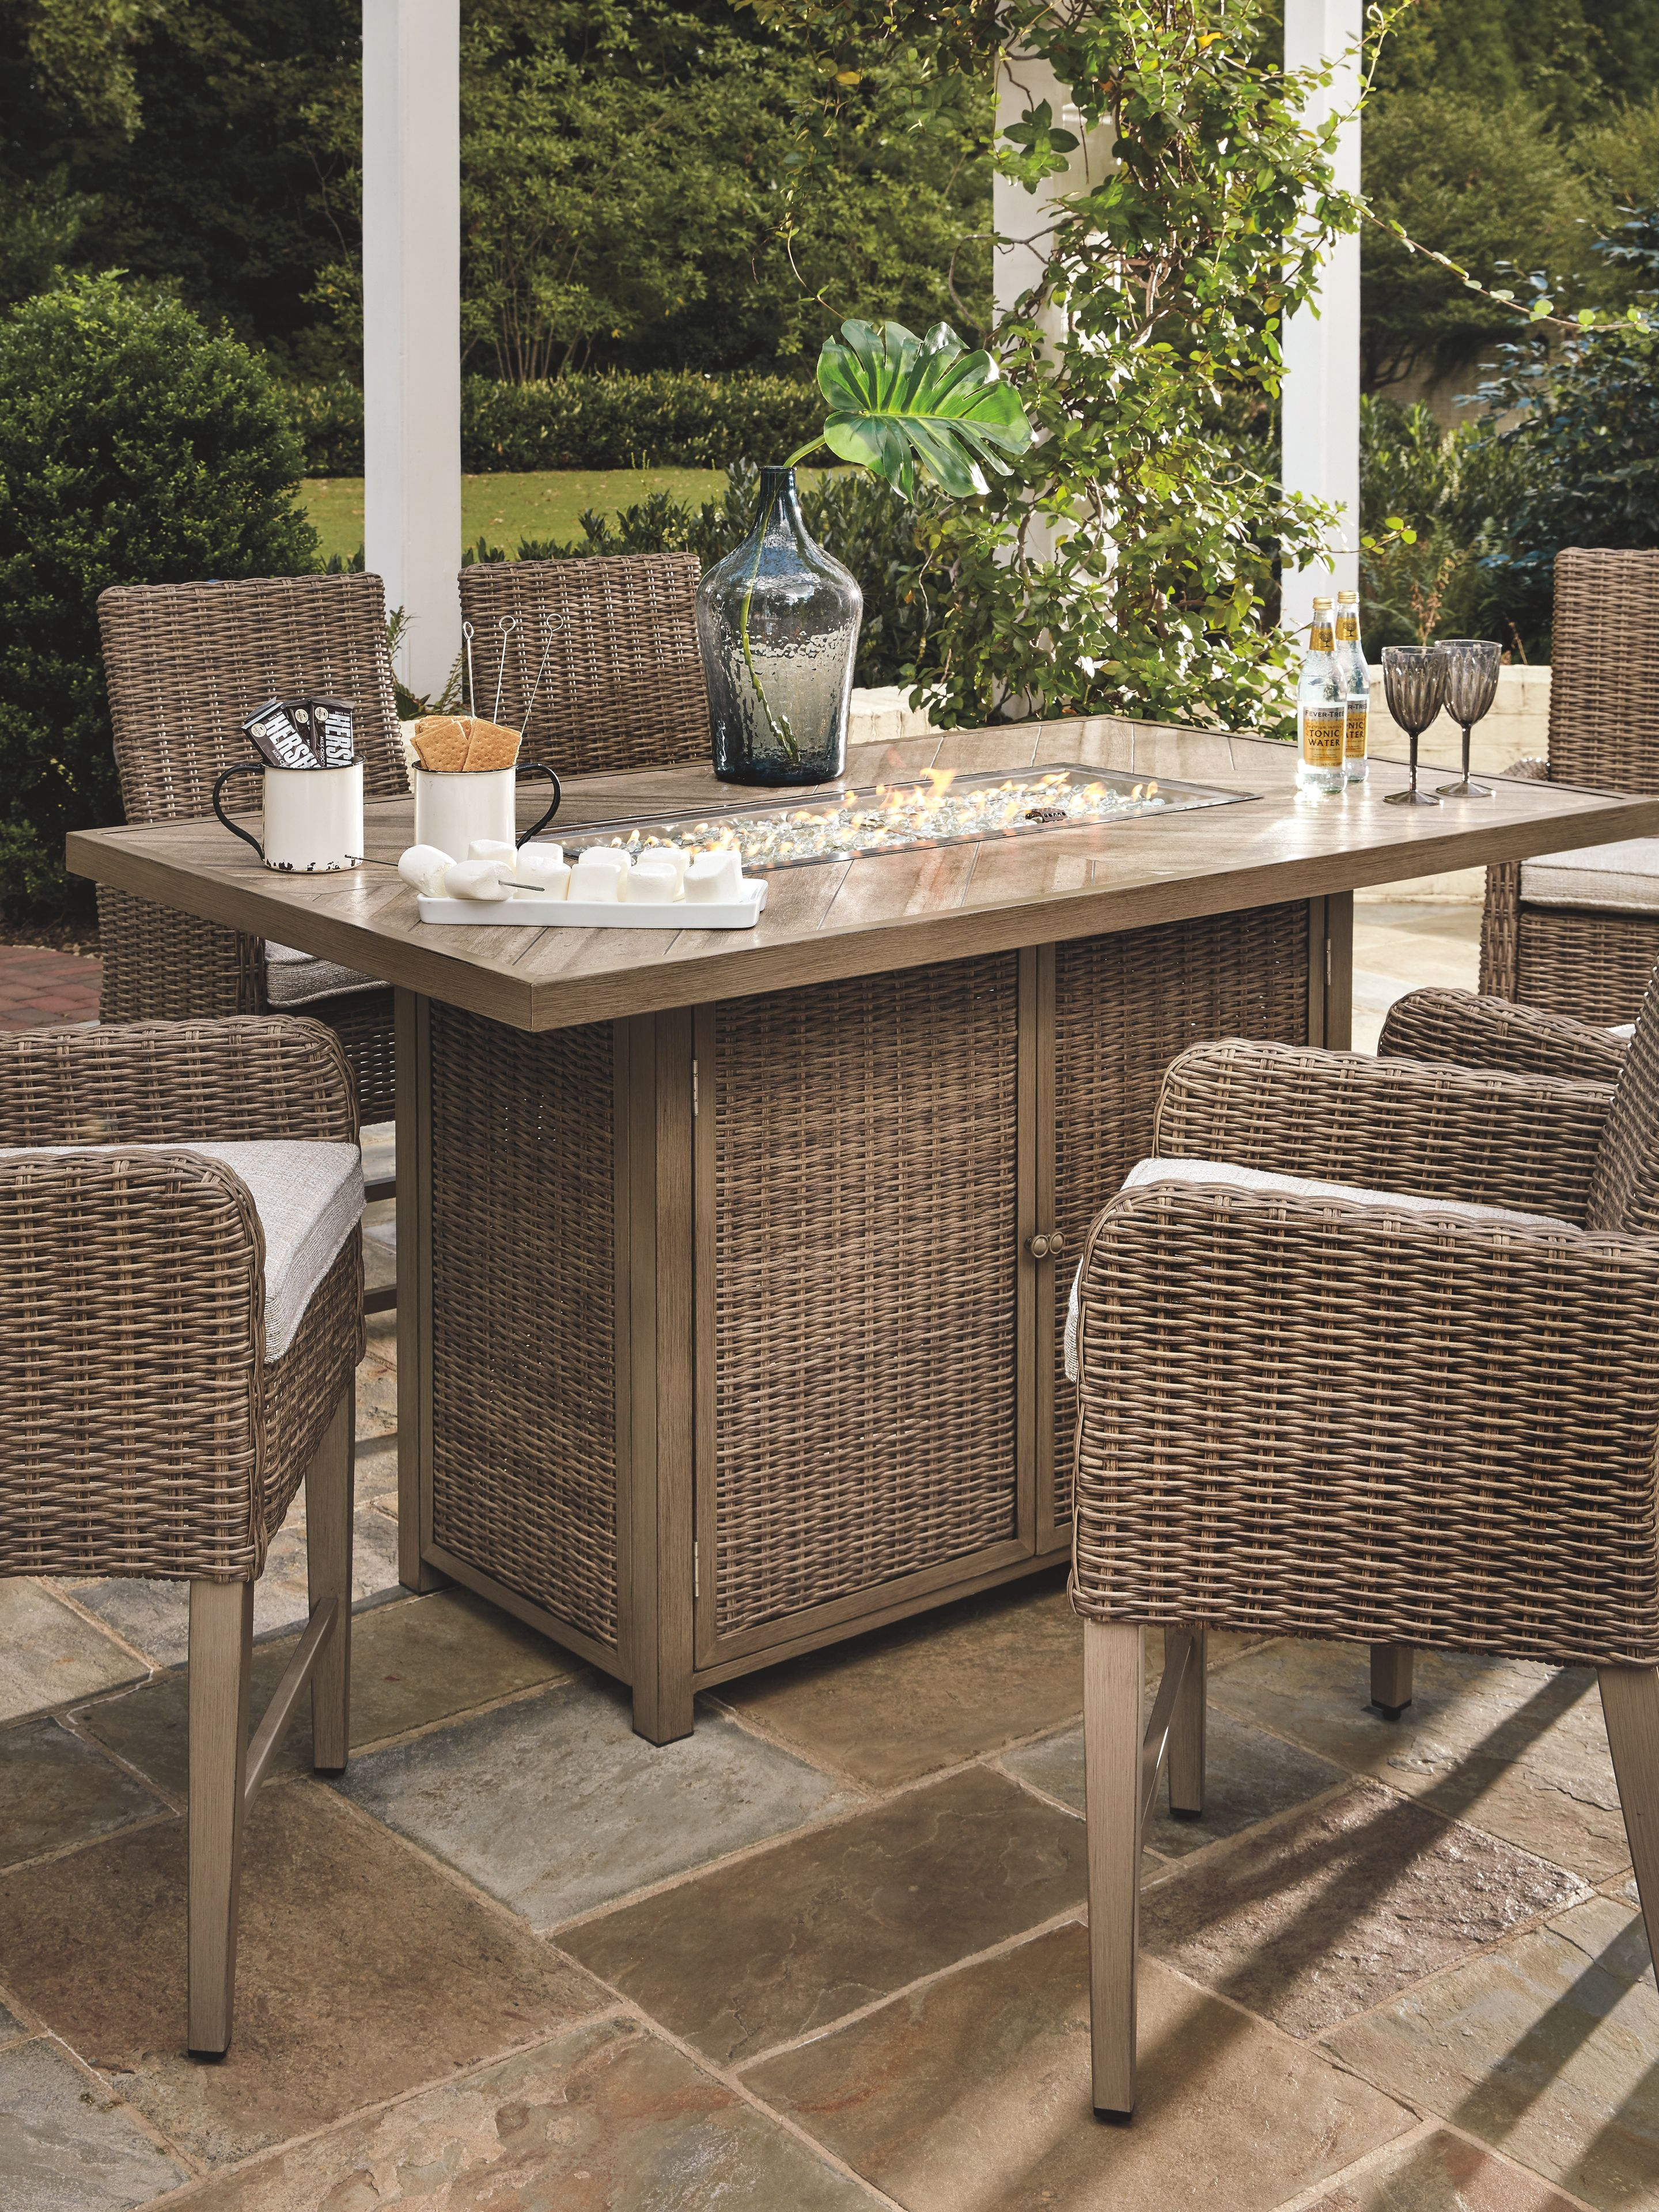 Marvelous Beachcroft Bar Table With Fire Pit Beige Products In 2019 Home Interior And Landscaping Spoatsignezvosmurscom